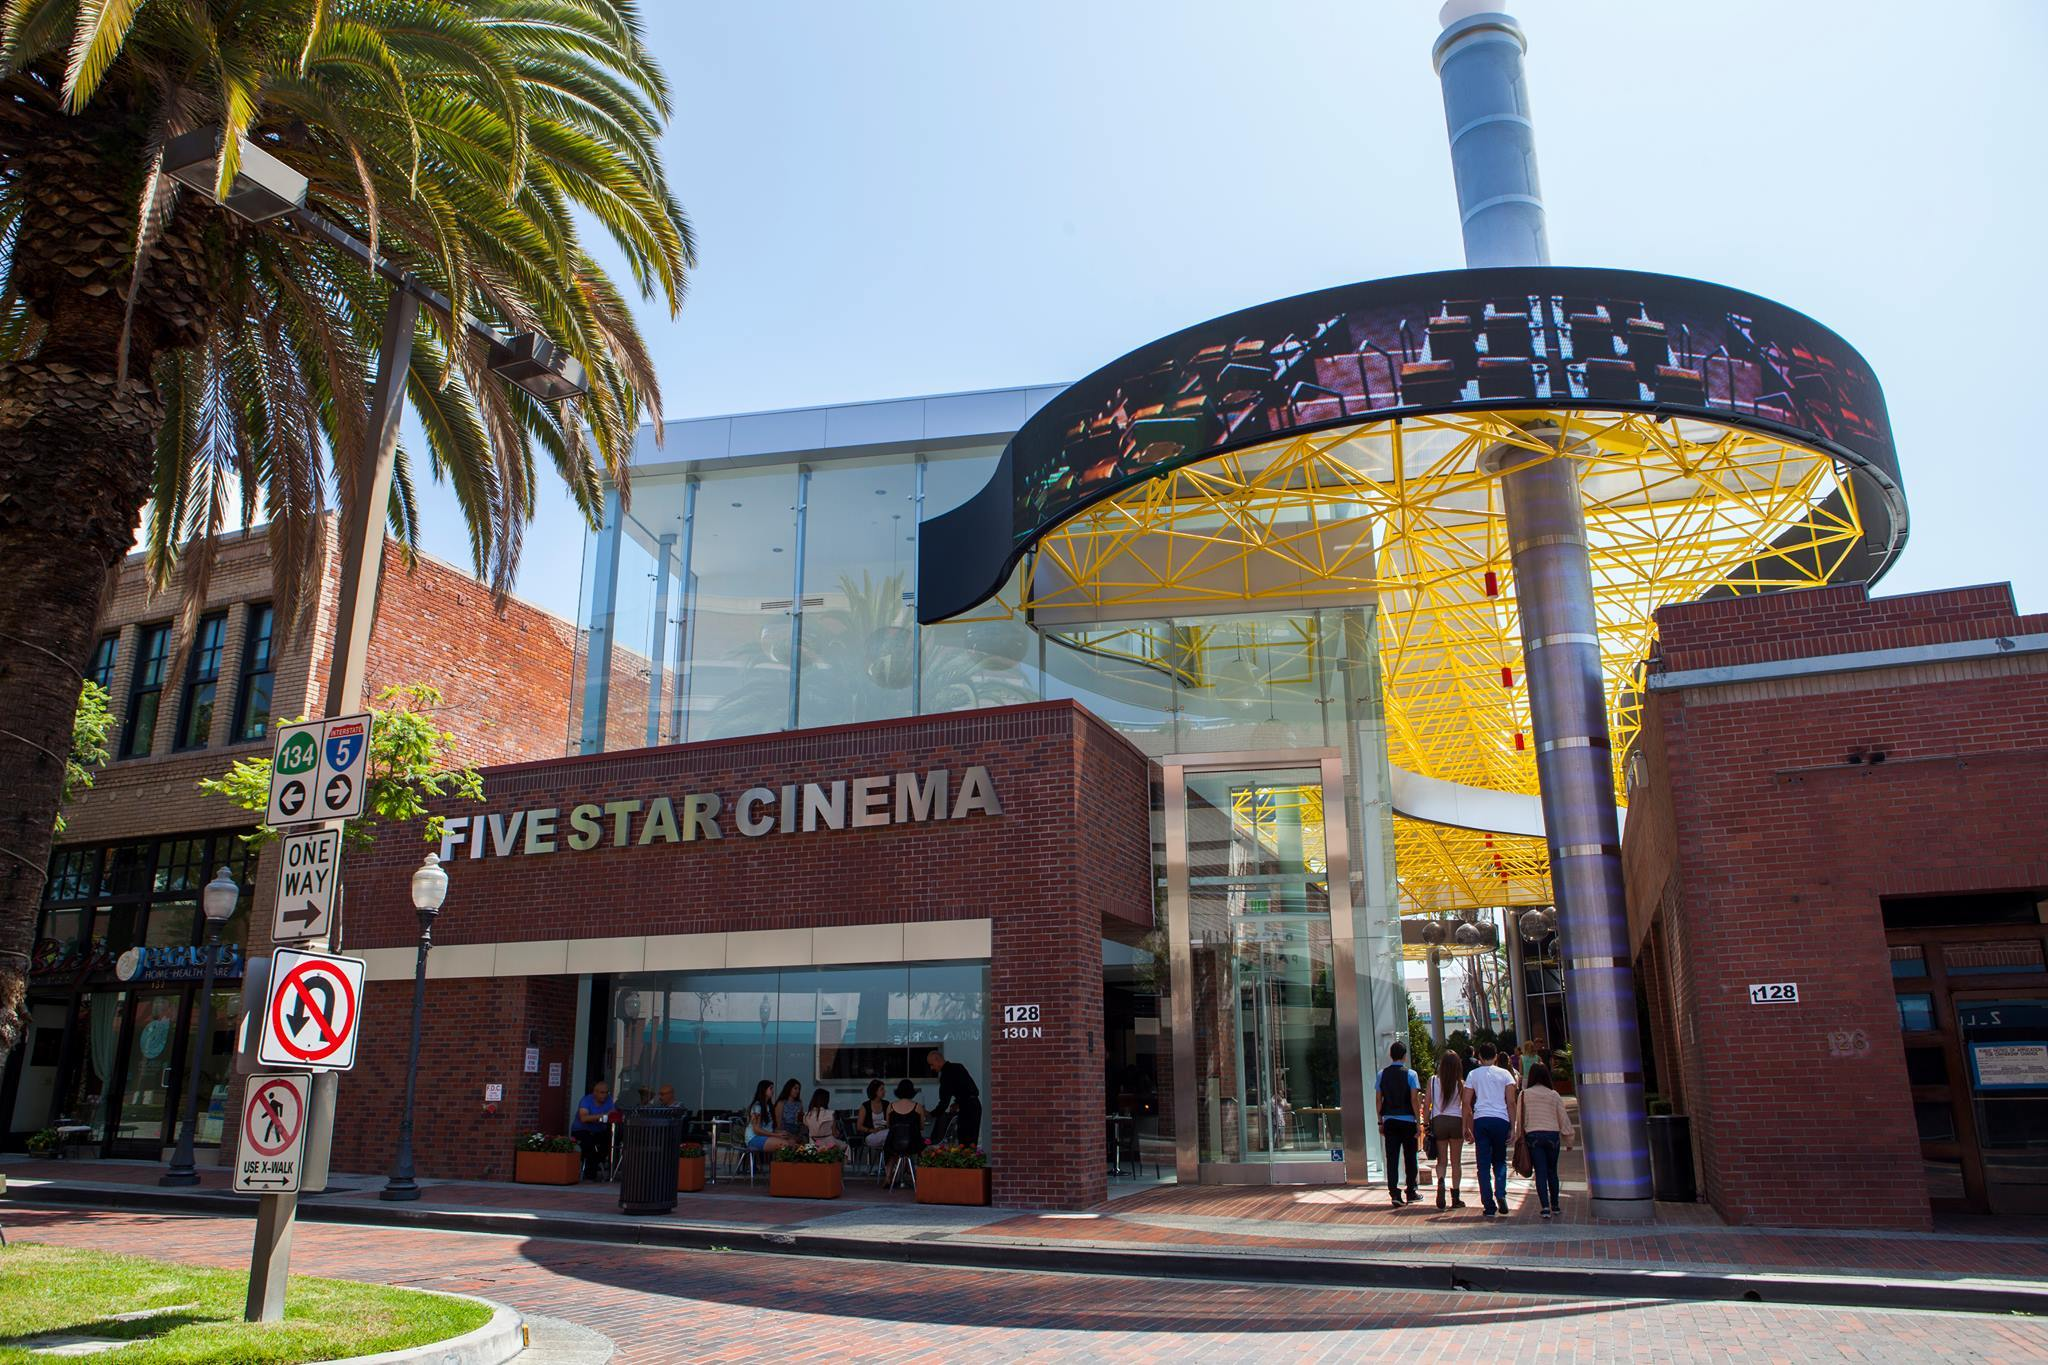 MGN Five Star Cinema